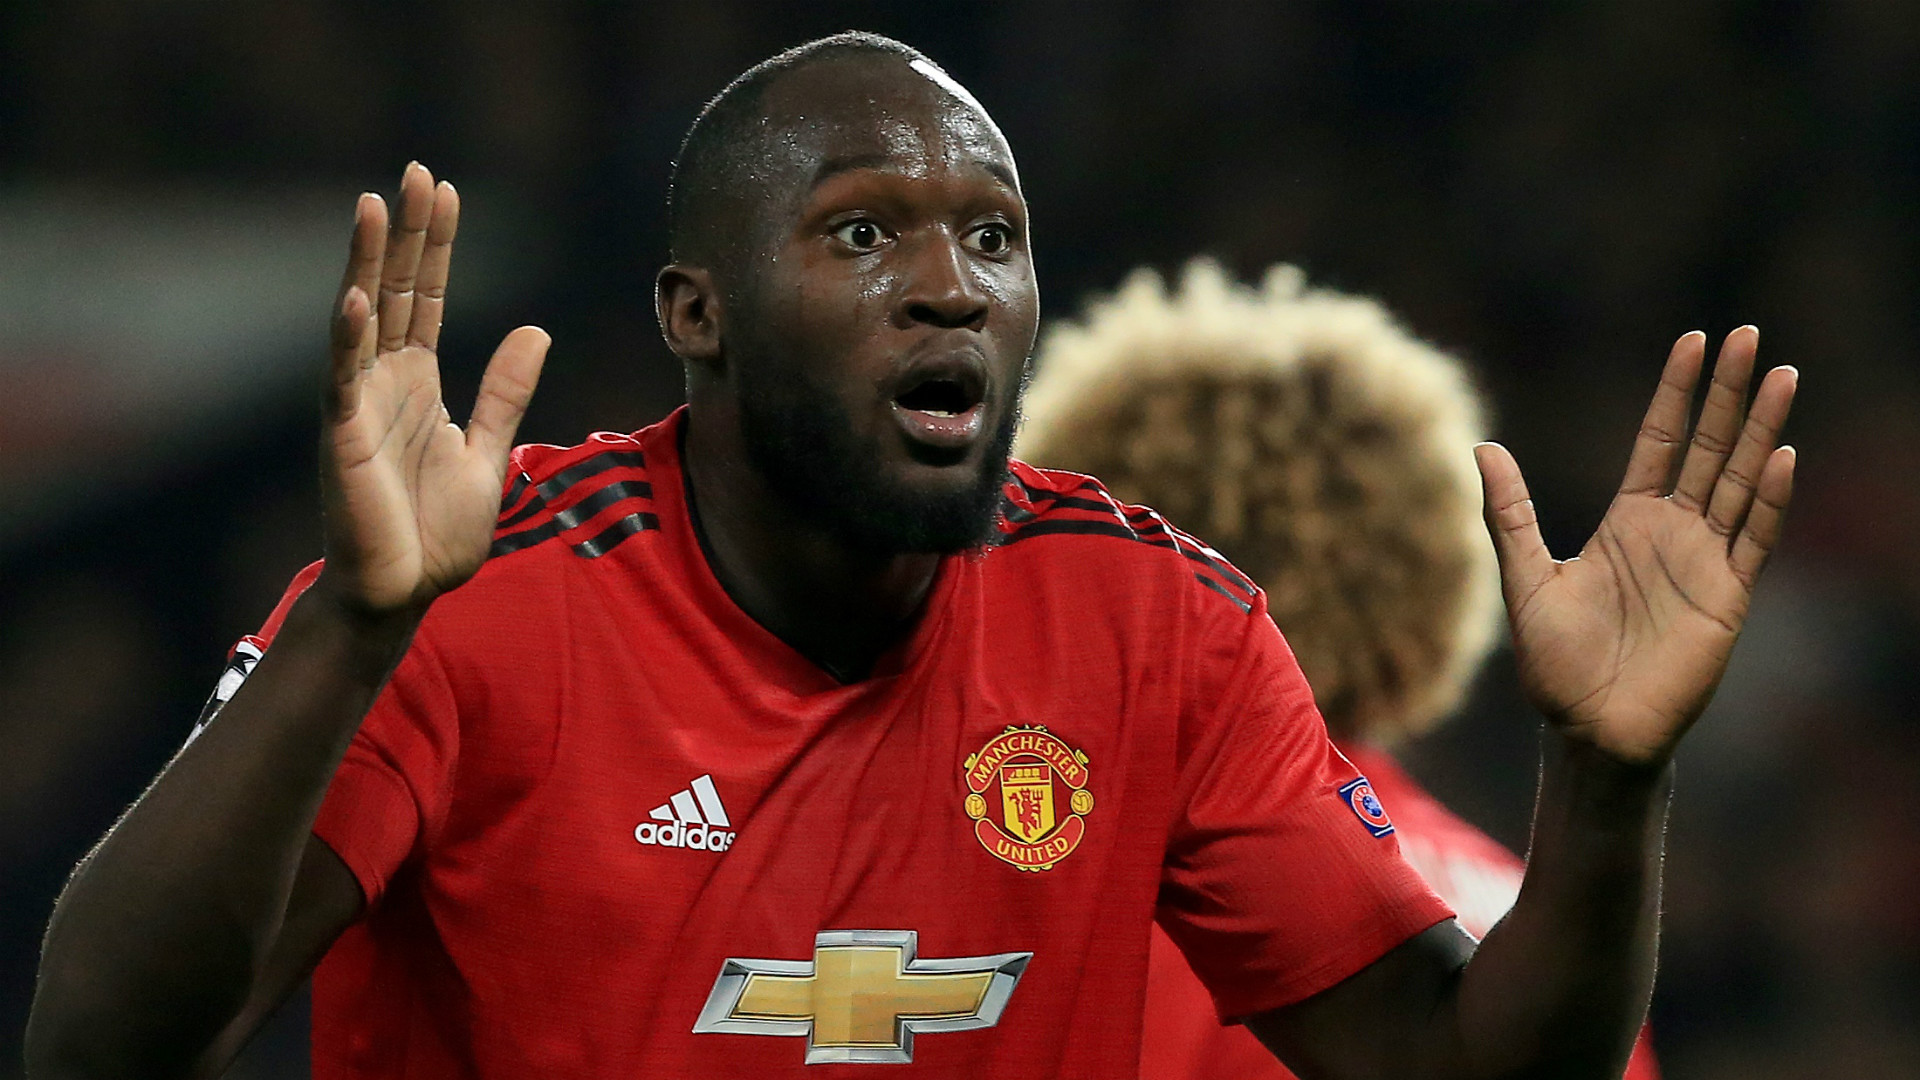 La star du football Lukaku marque un but sur le